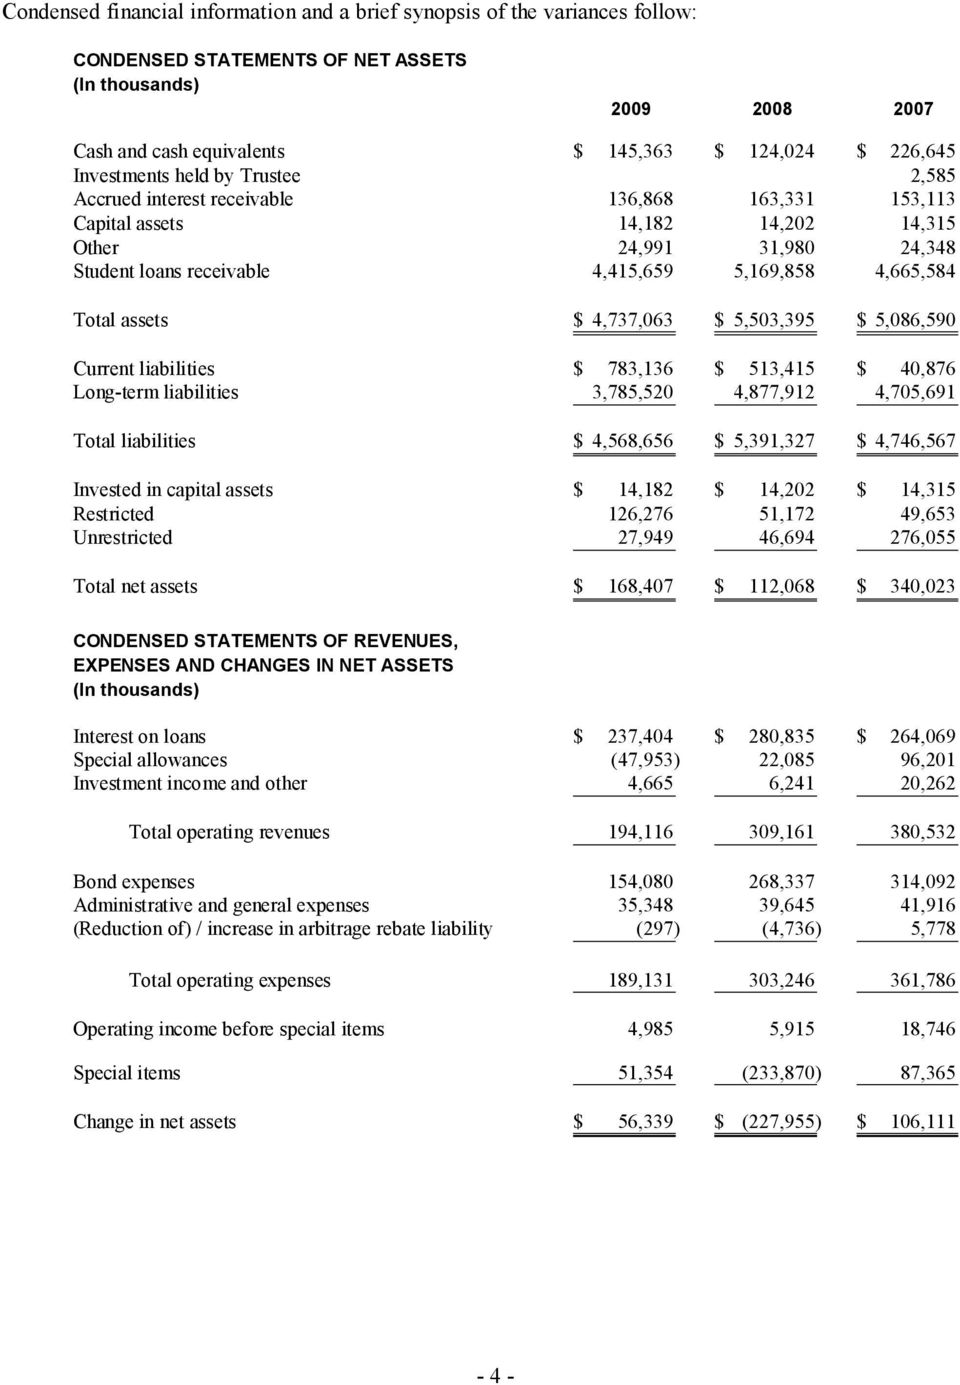 4,665,584 Total assets $ 4,737,063 $ 5,503,395 $ 5,086,590 Current liabilities $ 783,136 $ 513,415 $ 40,876 Long-term liabilities 3,785,520 4,877,912 4,705,691 Total liabilities $ 4,568,656 $